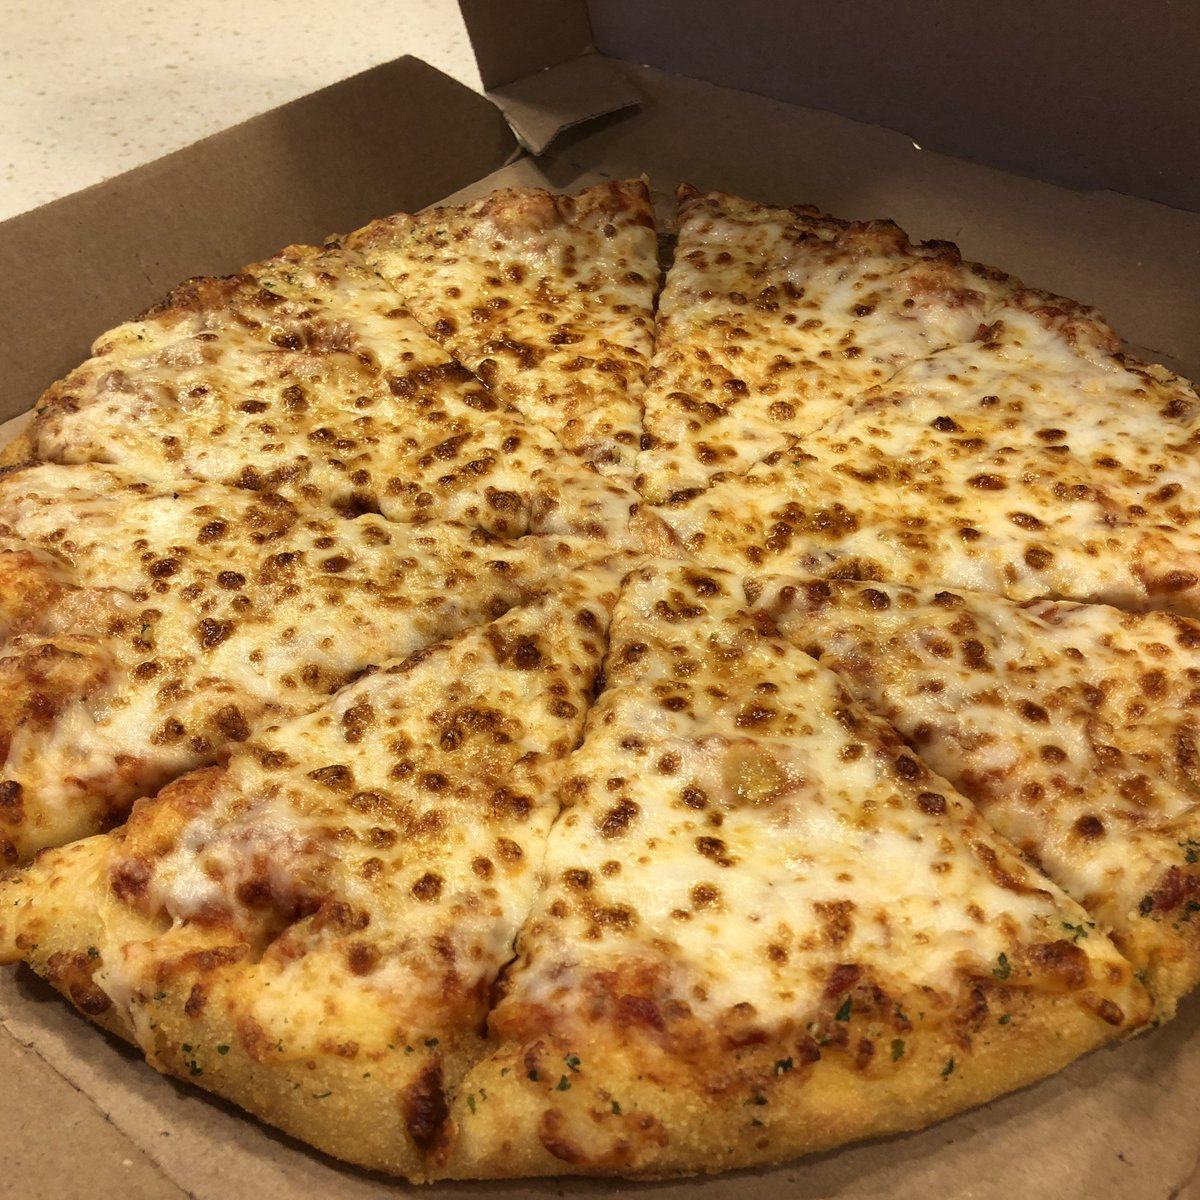 Domino S Pizza On Twitter Which Toppings Would You Add To This